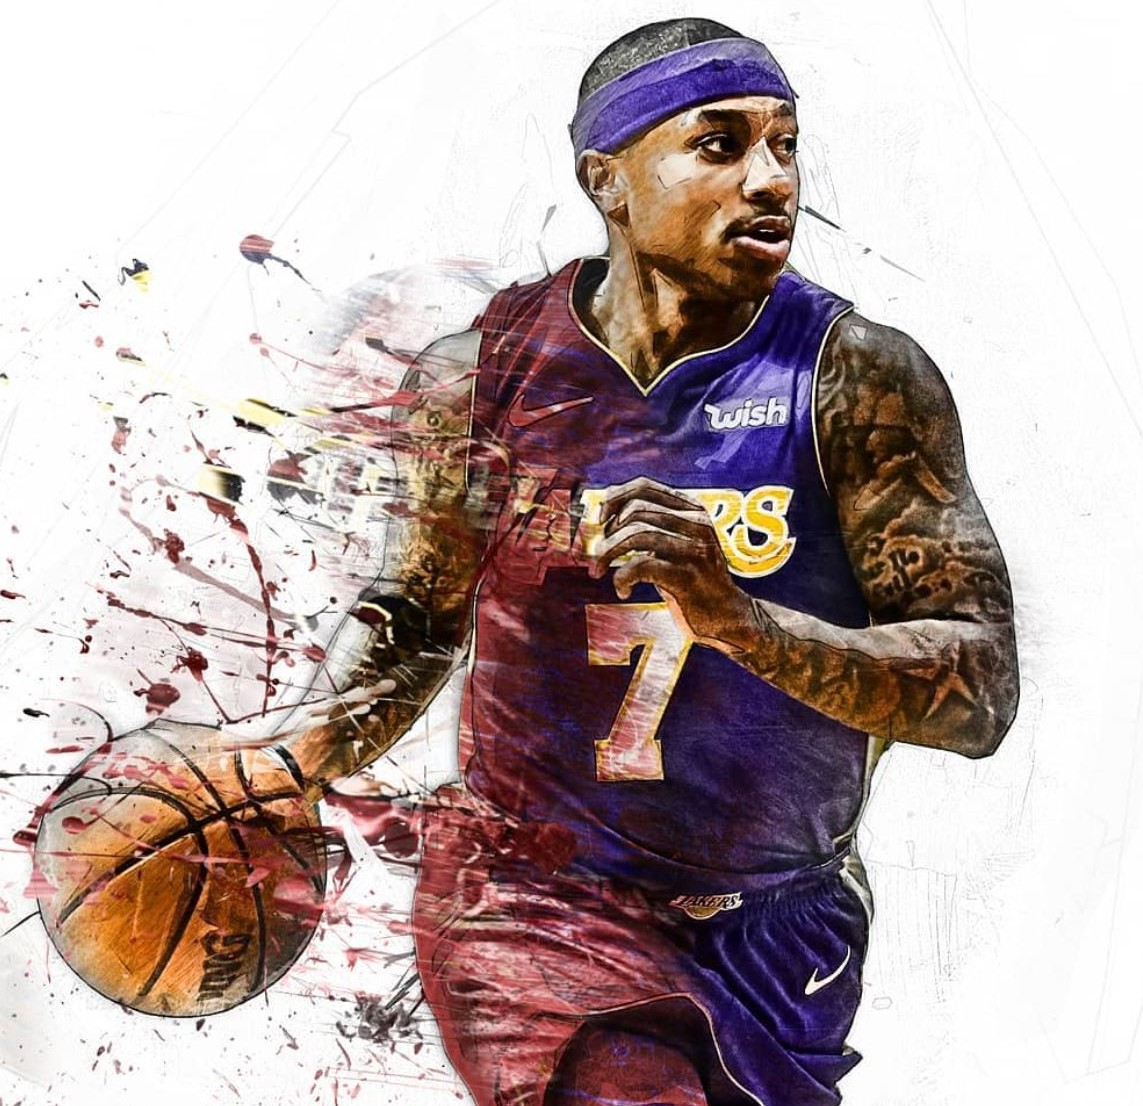 24361e65f19c To say Lakers fans have not embraced Isaiah Thomas  arrival in purple and  gold would be an understatement. In less than one year